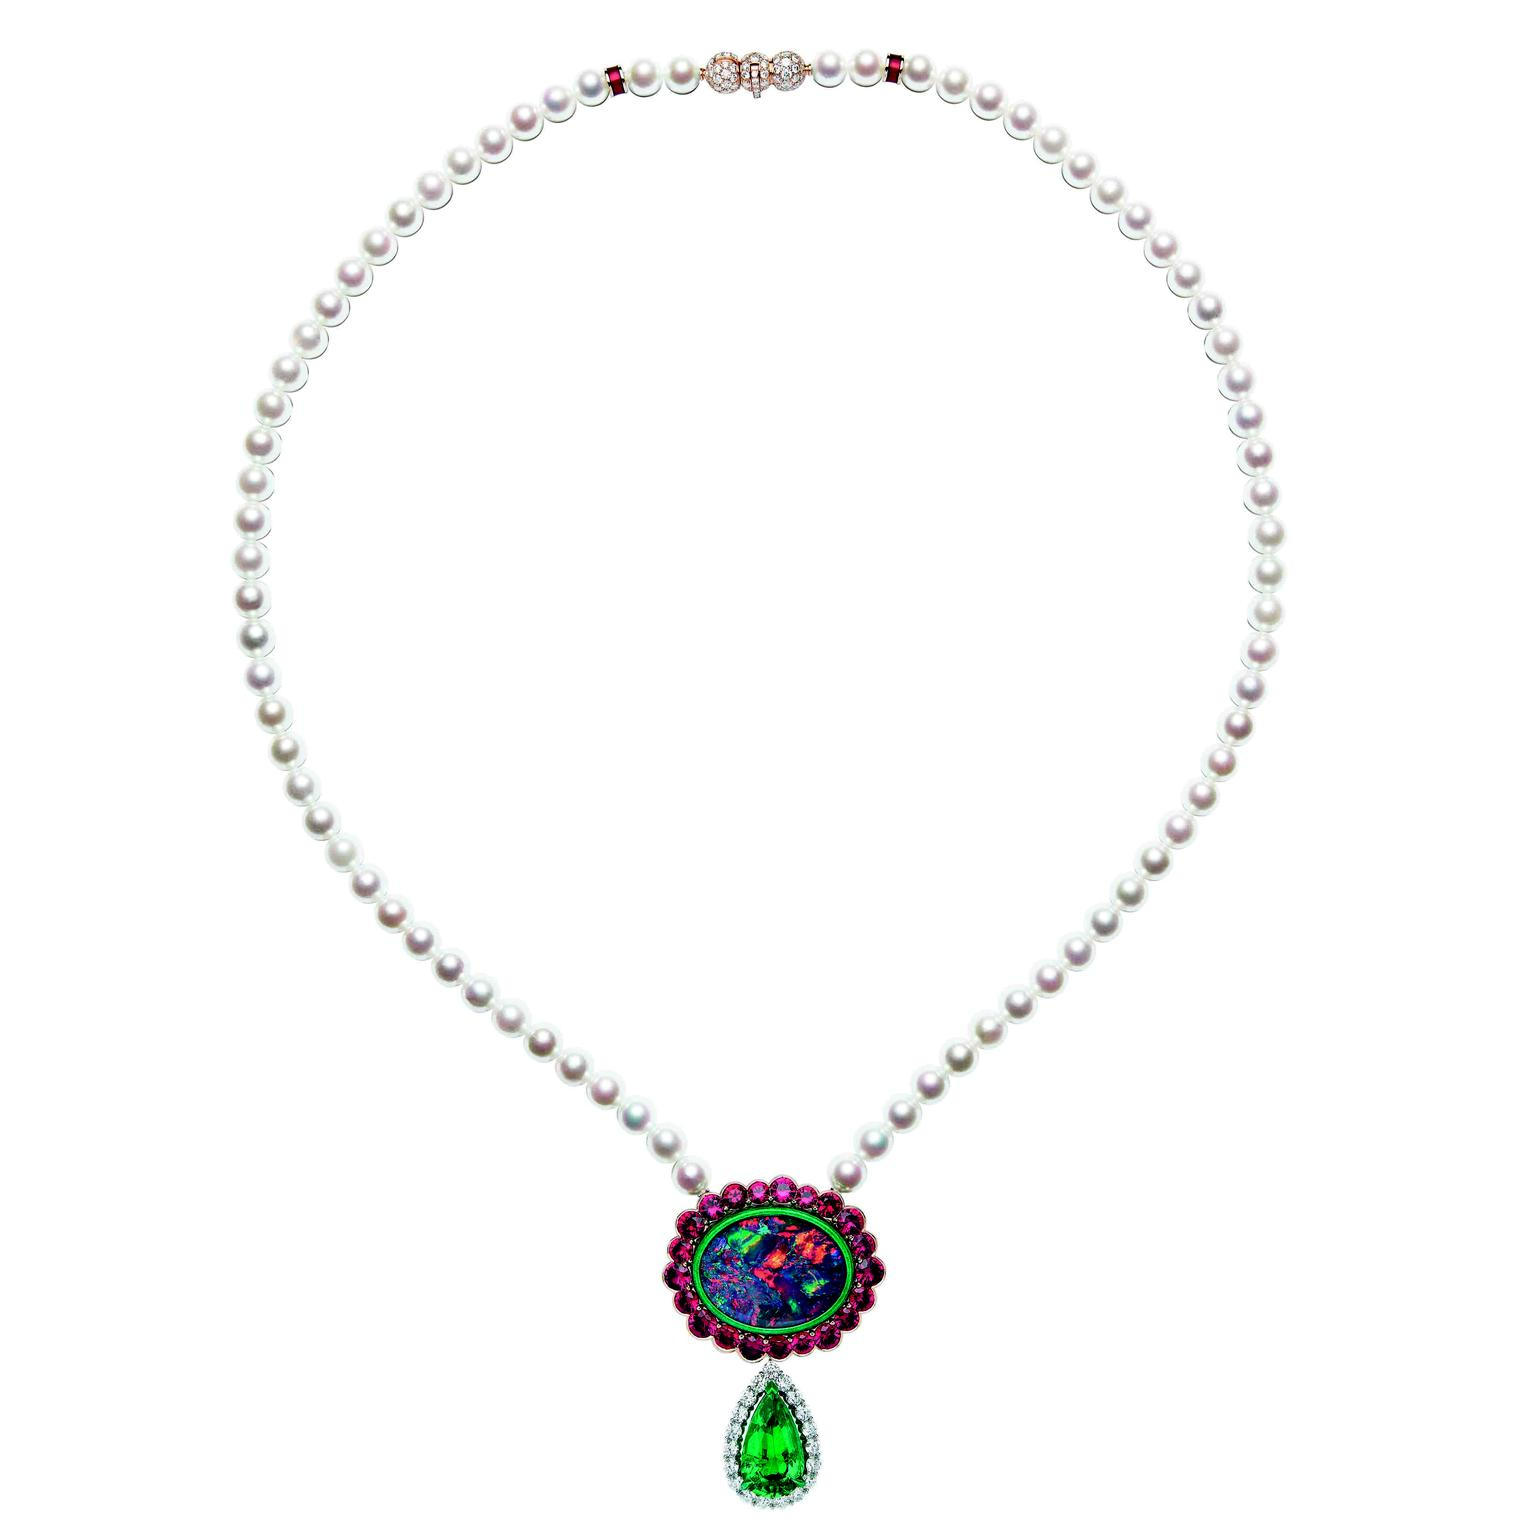 Dior et Moi high jewellery necklace with emerald